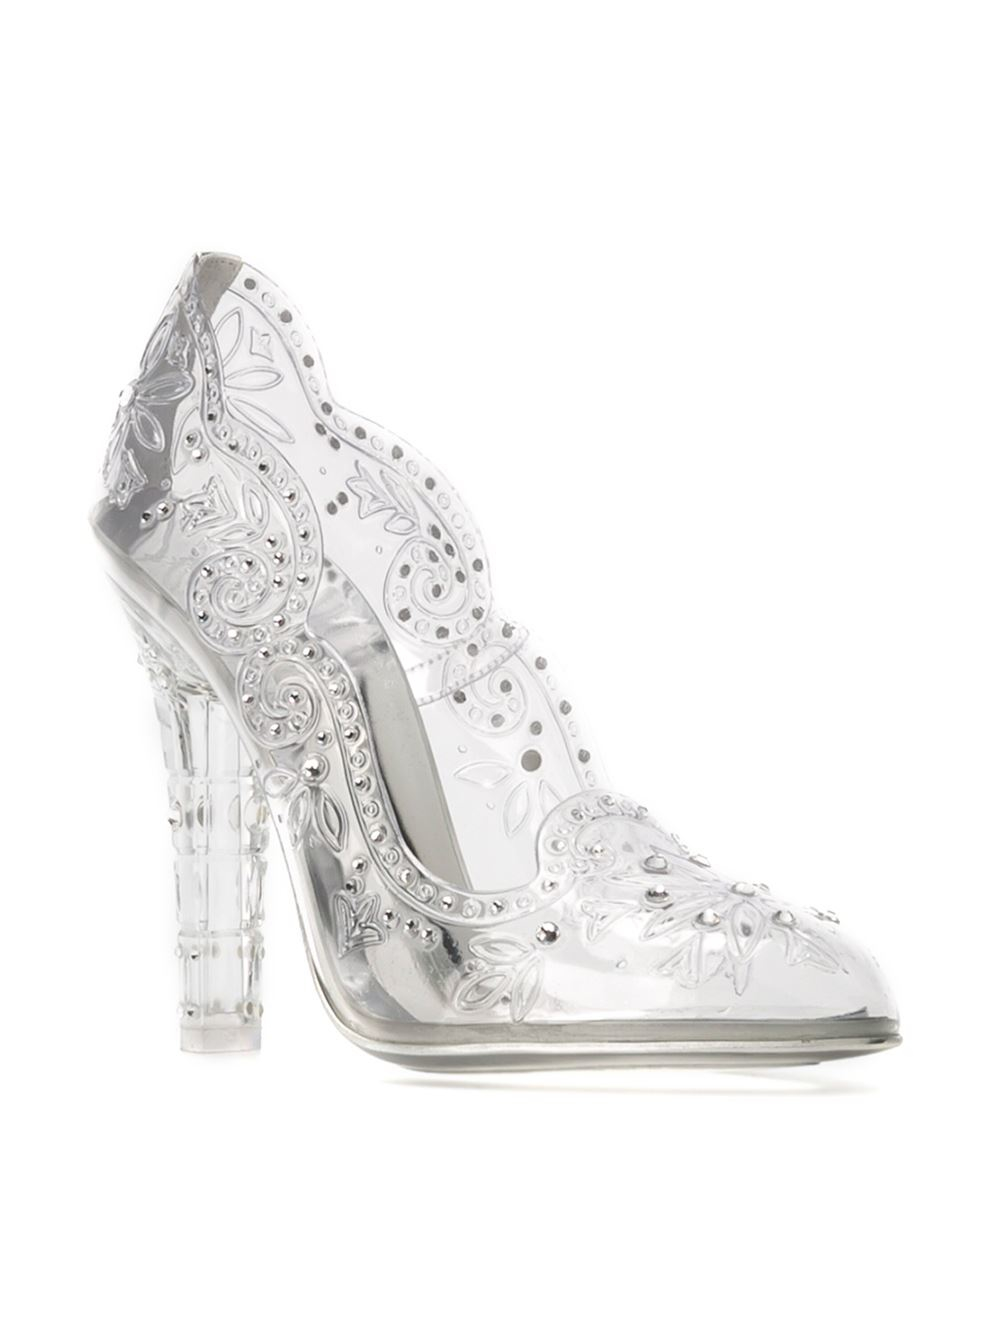 ad36b87f028e Lyst - Dolce   Gabbana Embellished Clear Pumps in White